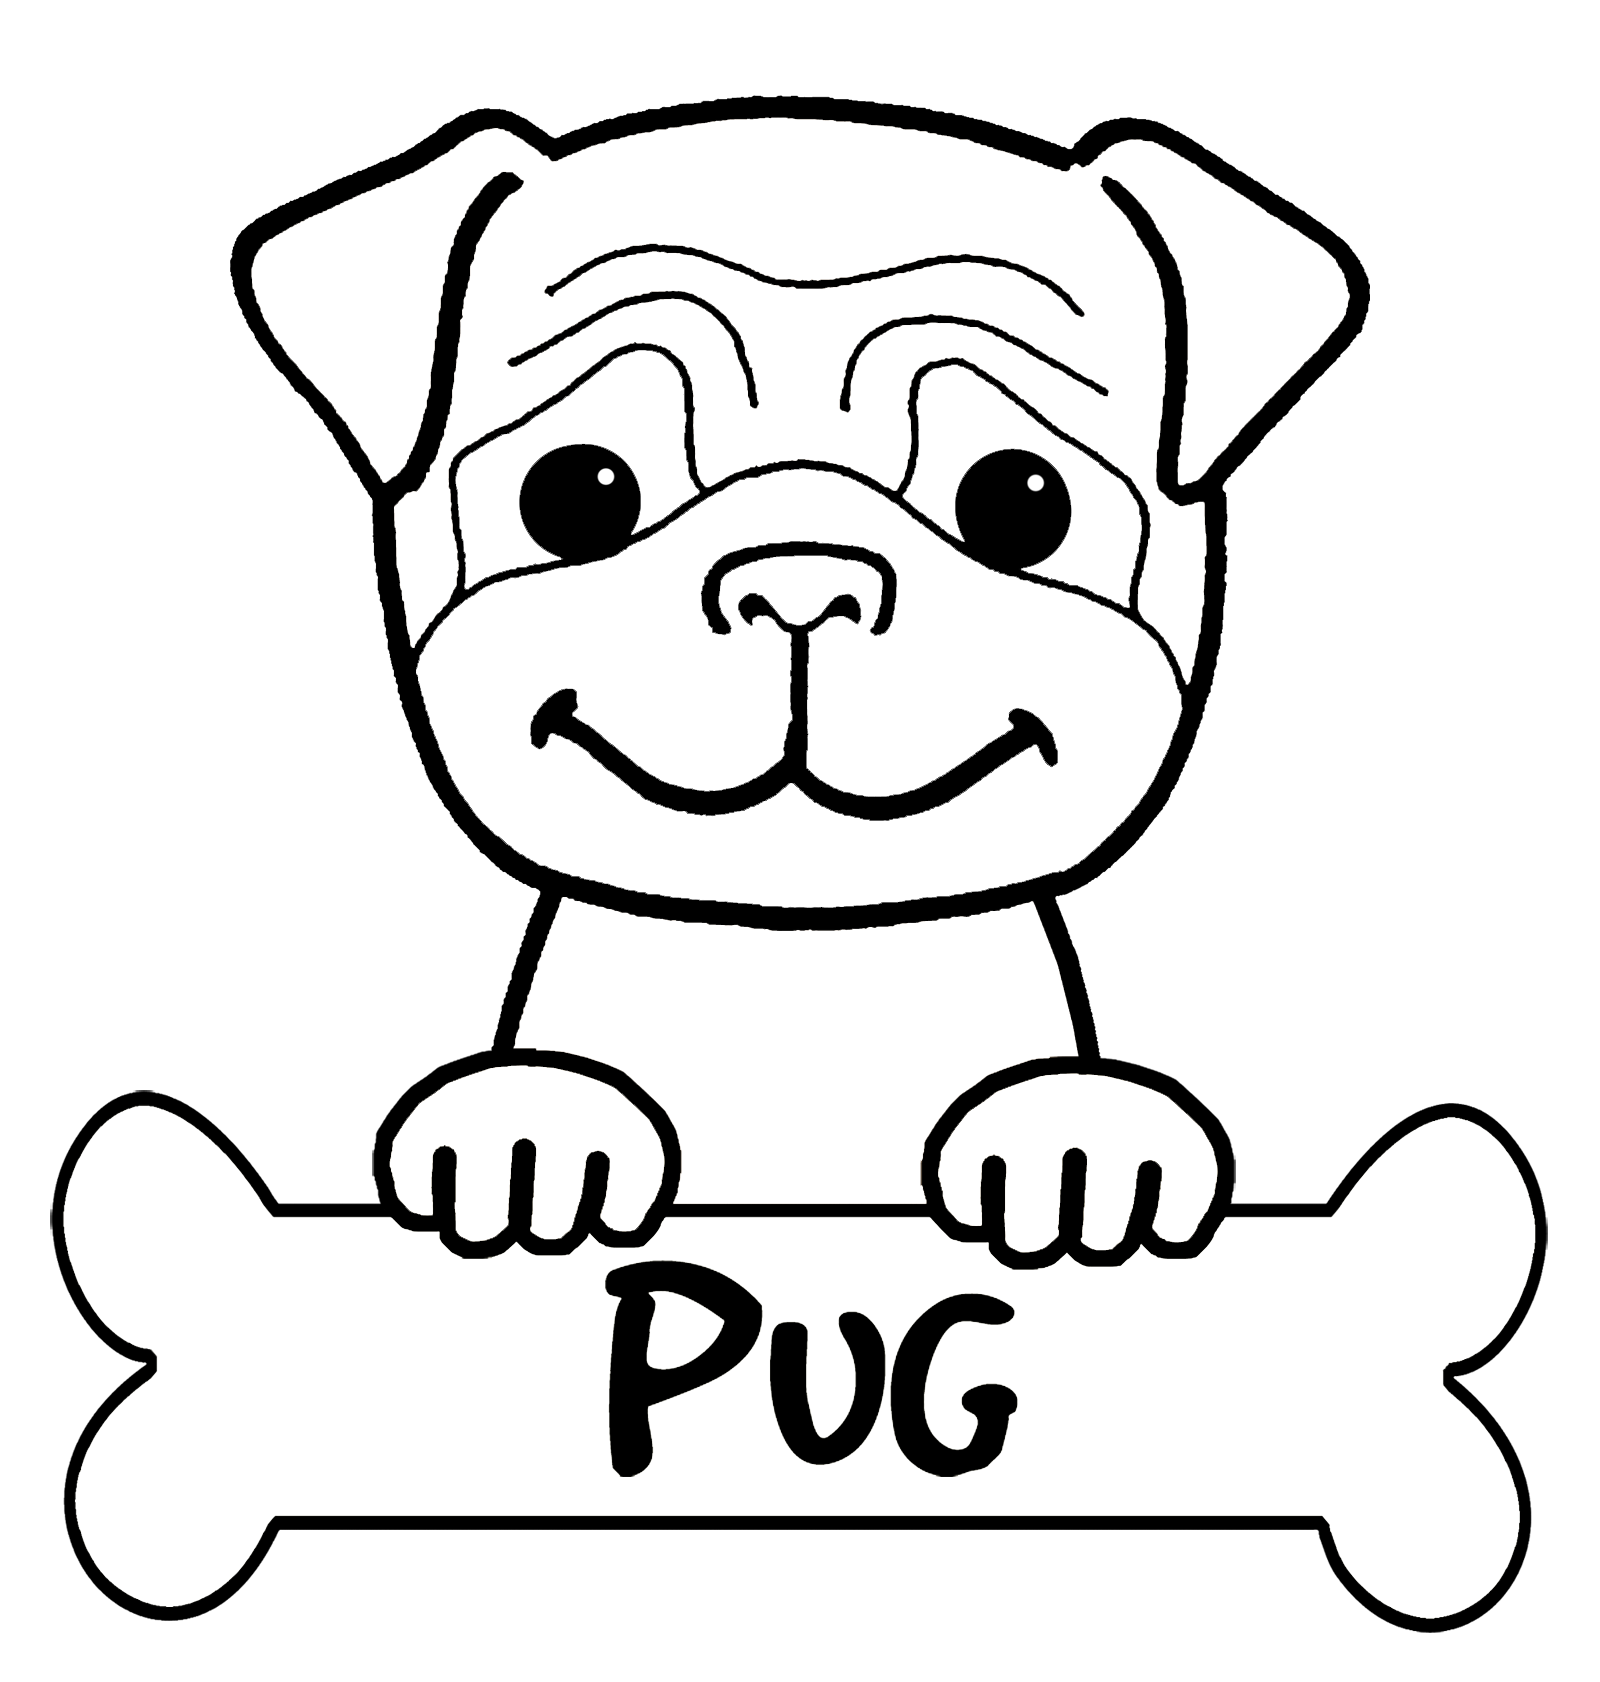 Free Dog Coloring Pages Animal Cute Image 51 - VoteForVerde.com